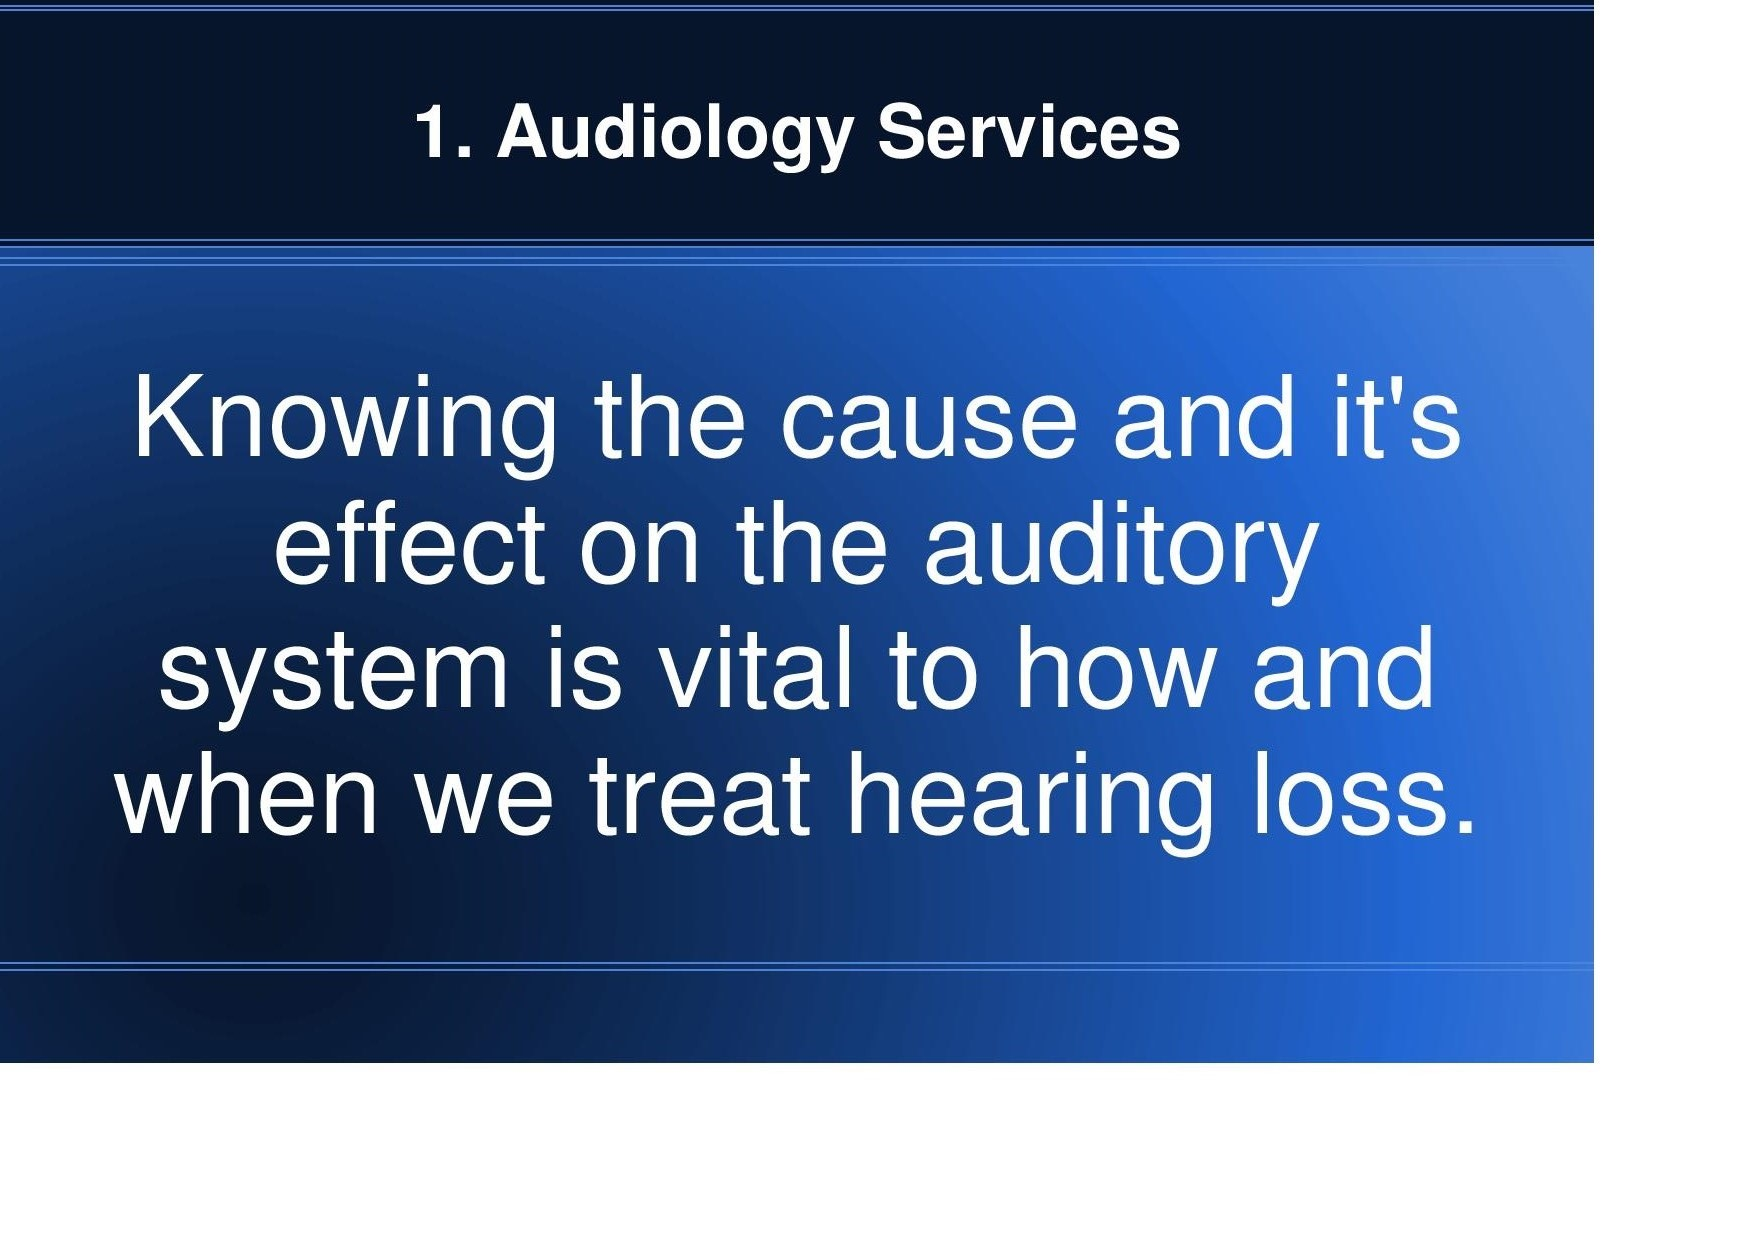 Web 3 ways to combat hearing loss01.jpg